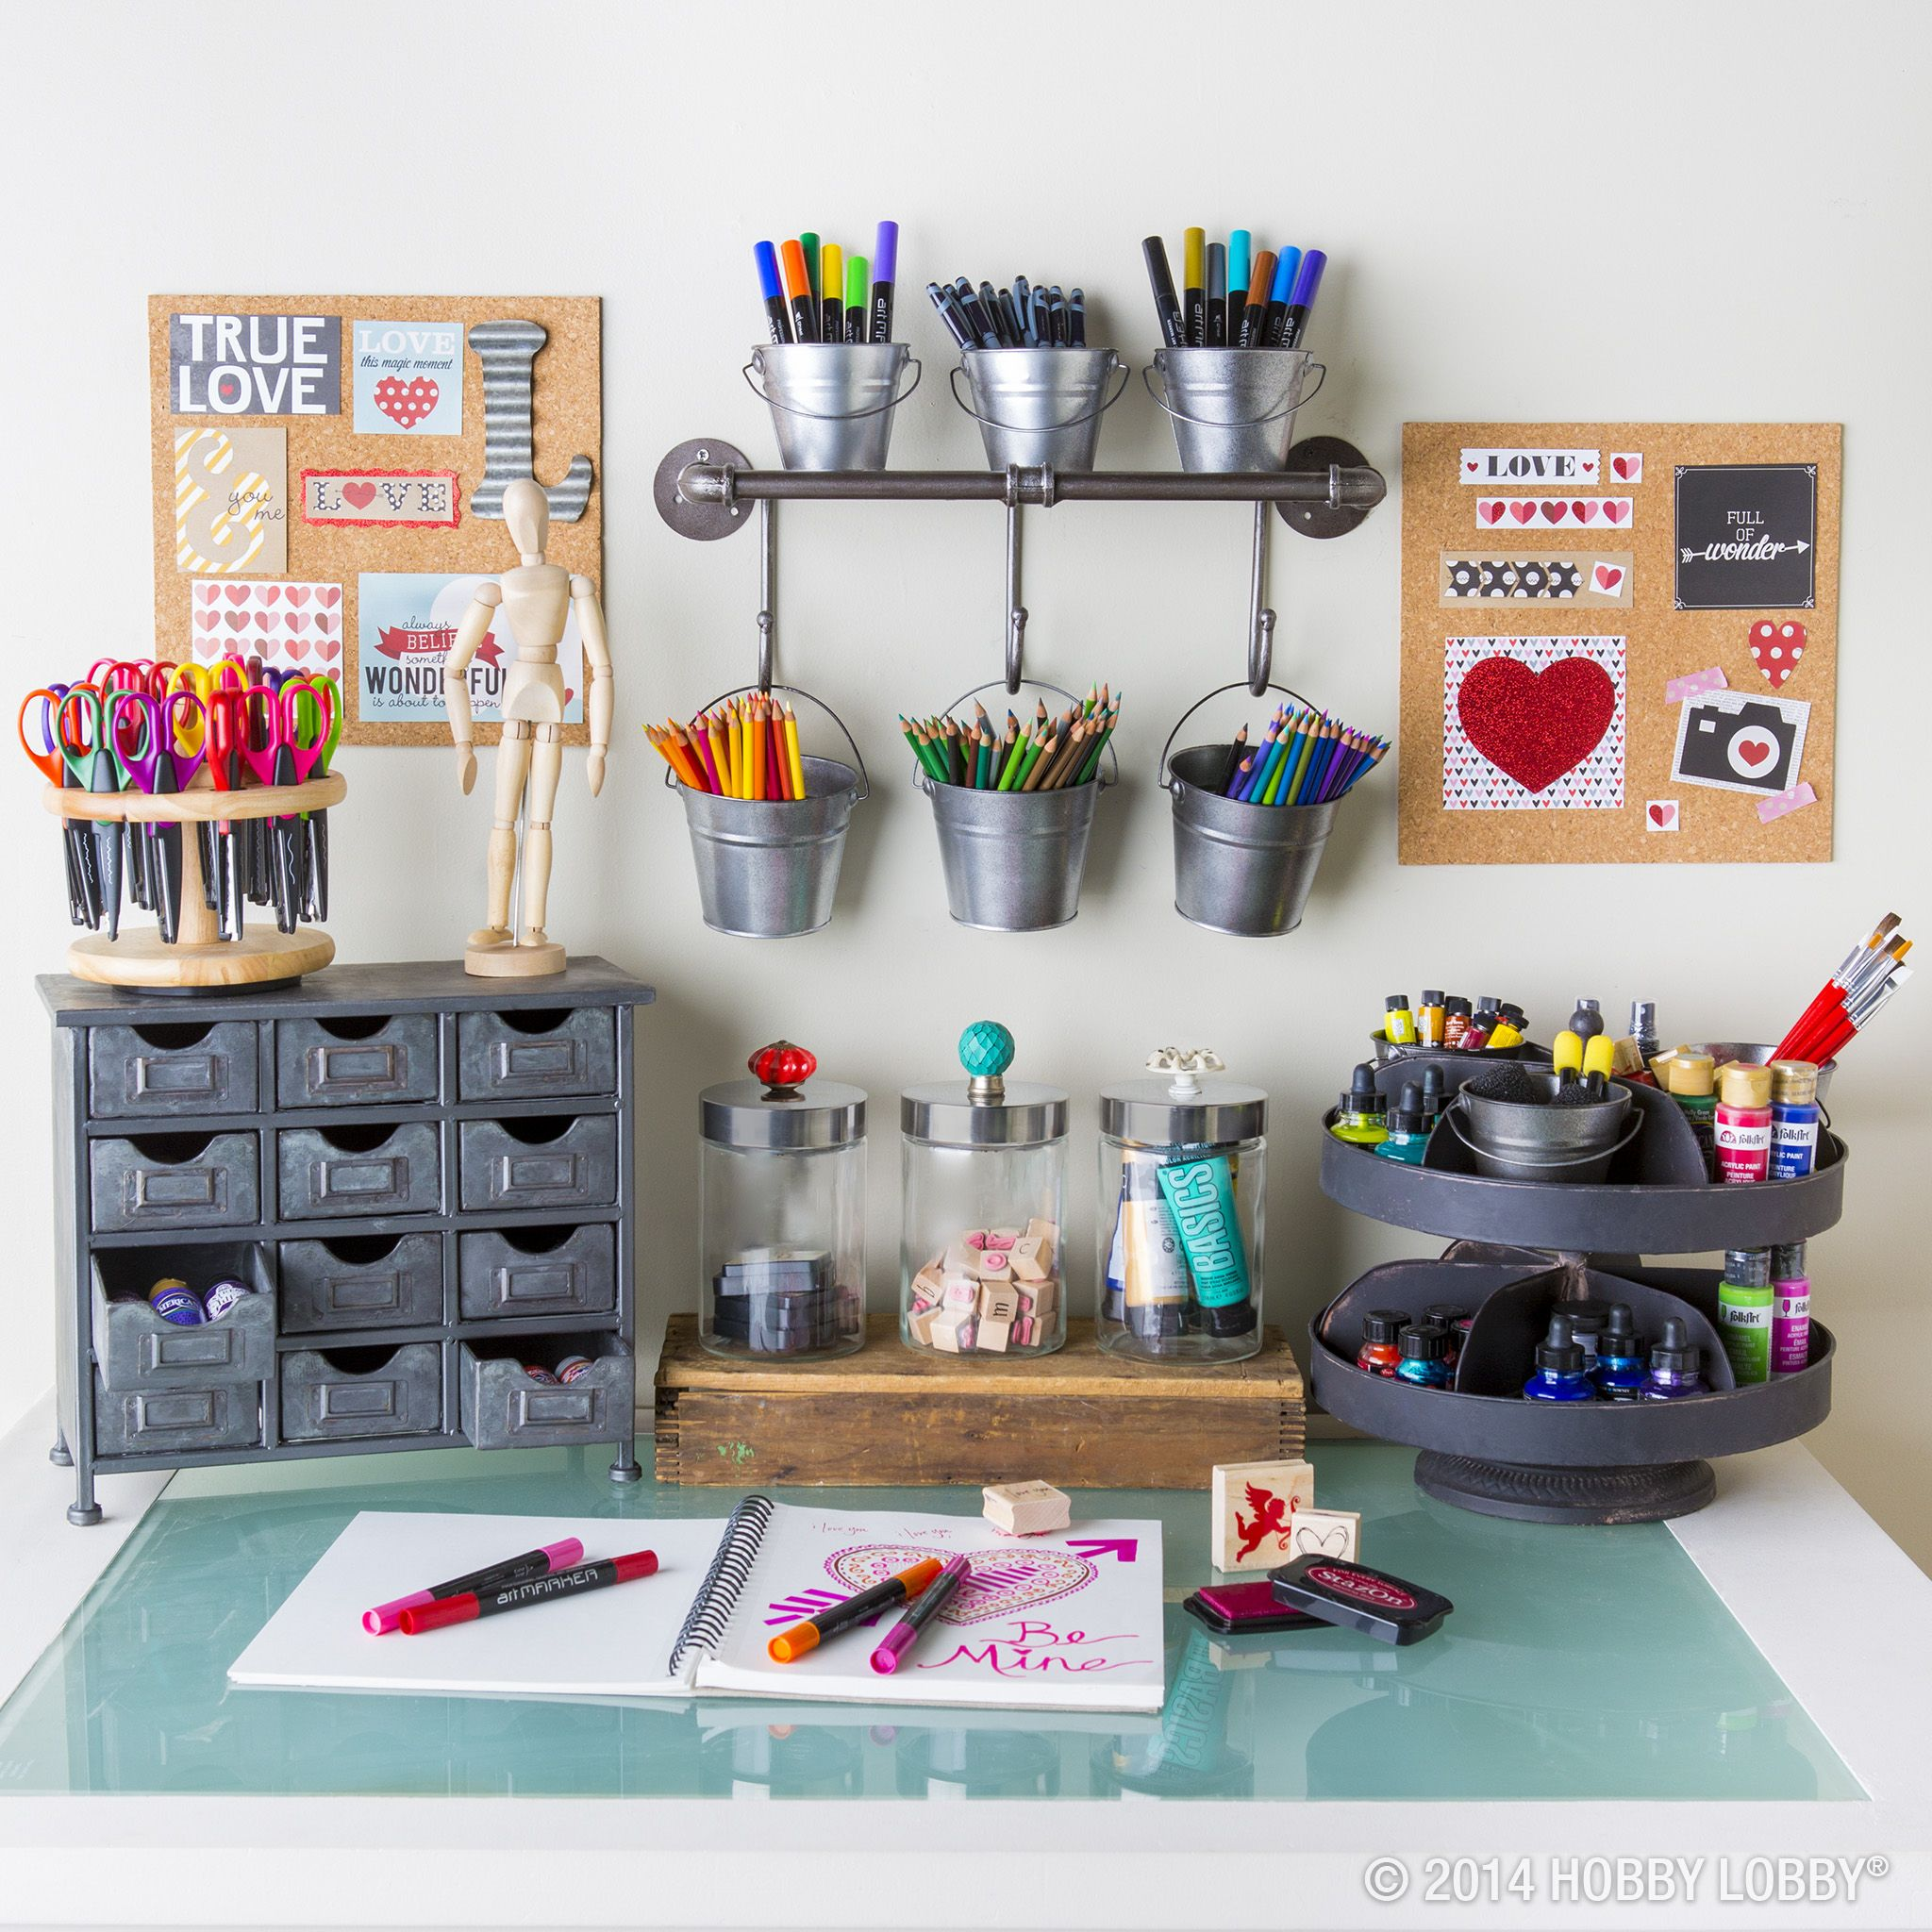 If art supplies have taken over your desk, clean it up